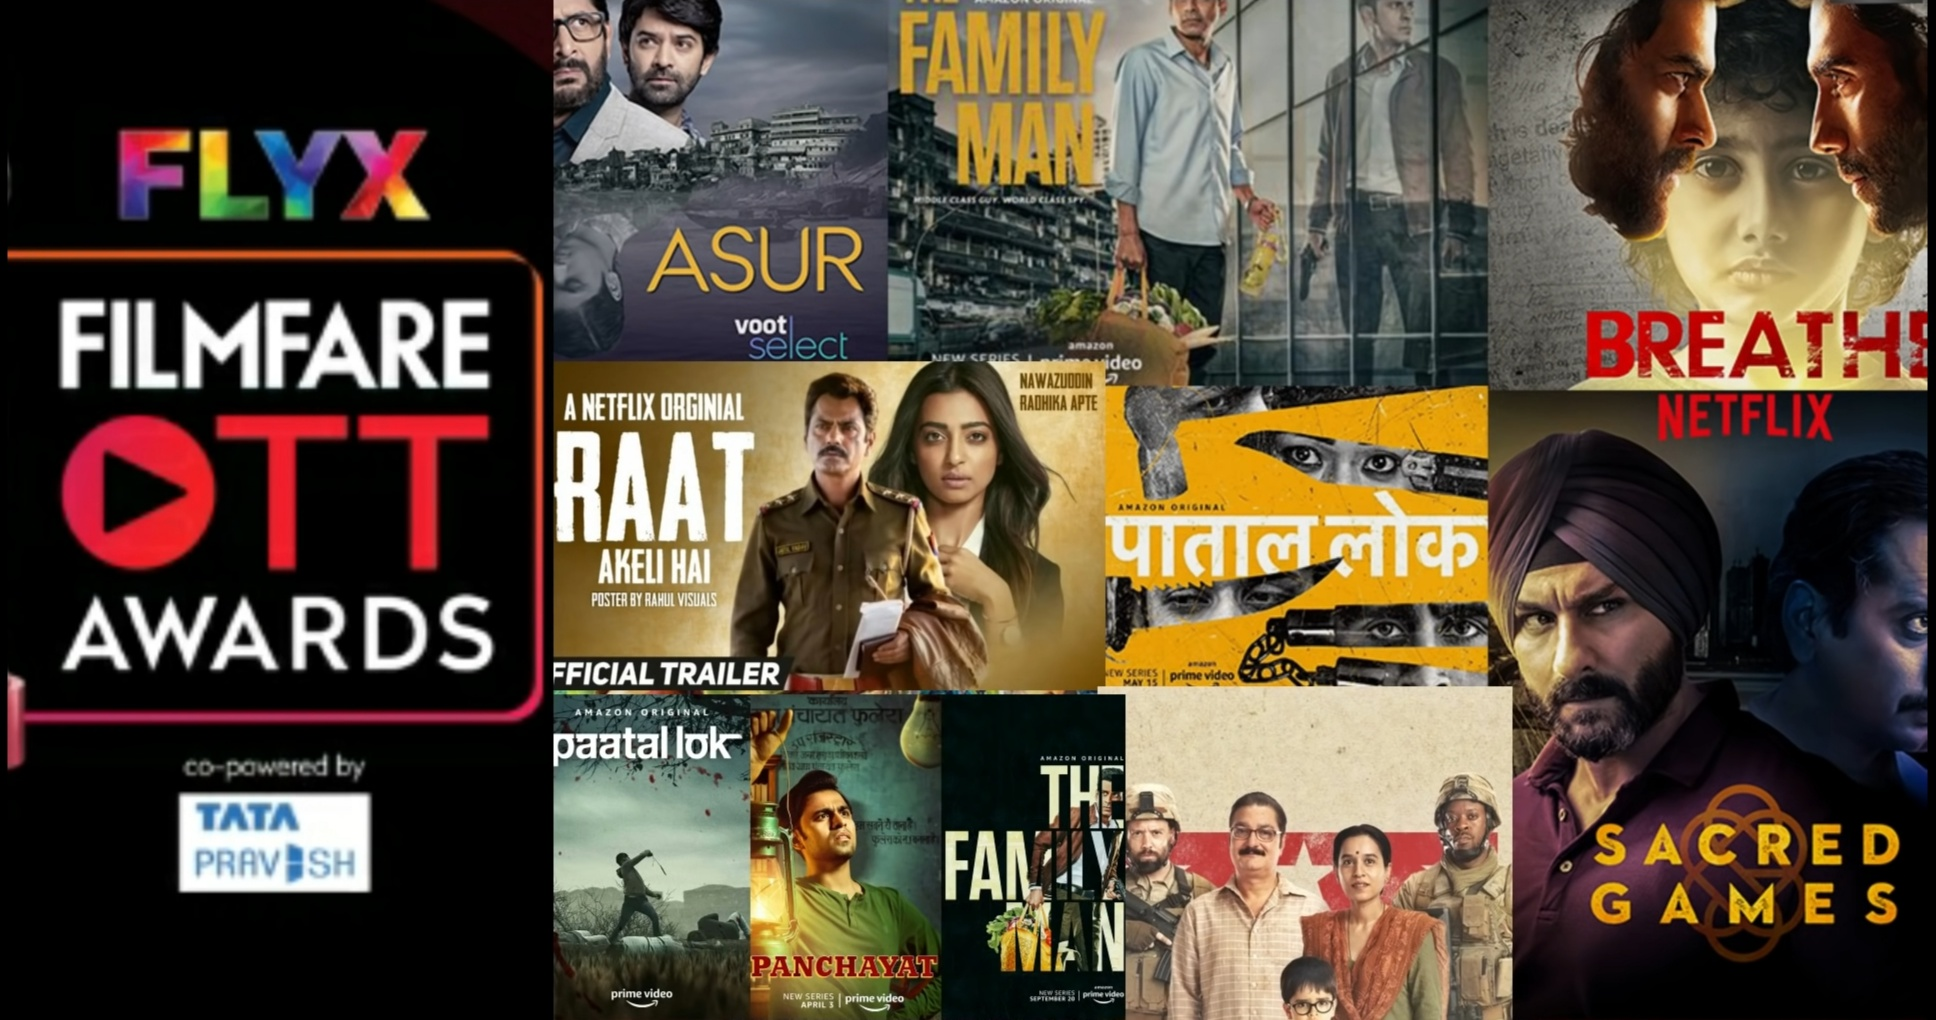 Filmfare-OTT-Awards-2020-Paatal-Lok-The-Family-Man-and-Panchayat-dominated-the-FLYX-Filmfare-Awards-see-the-list-of-winners